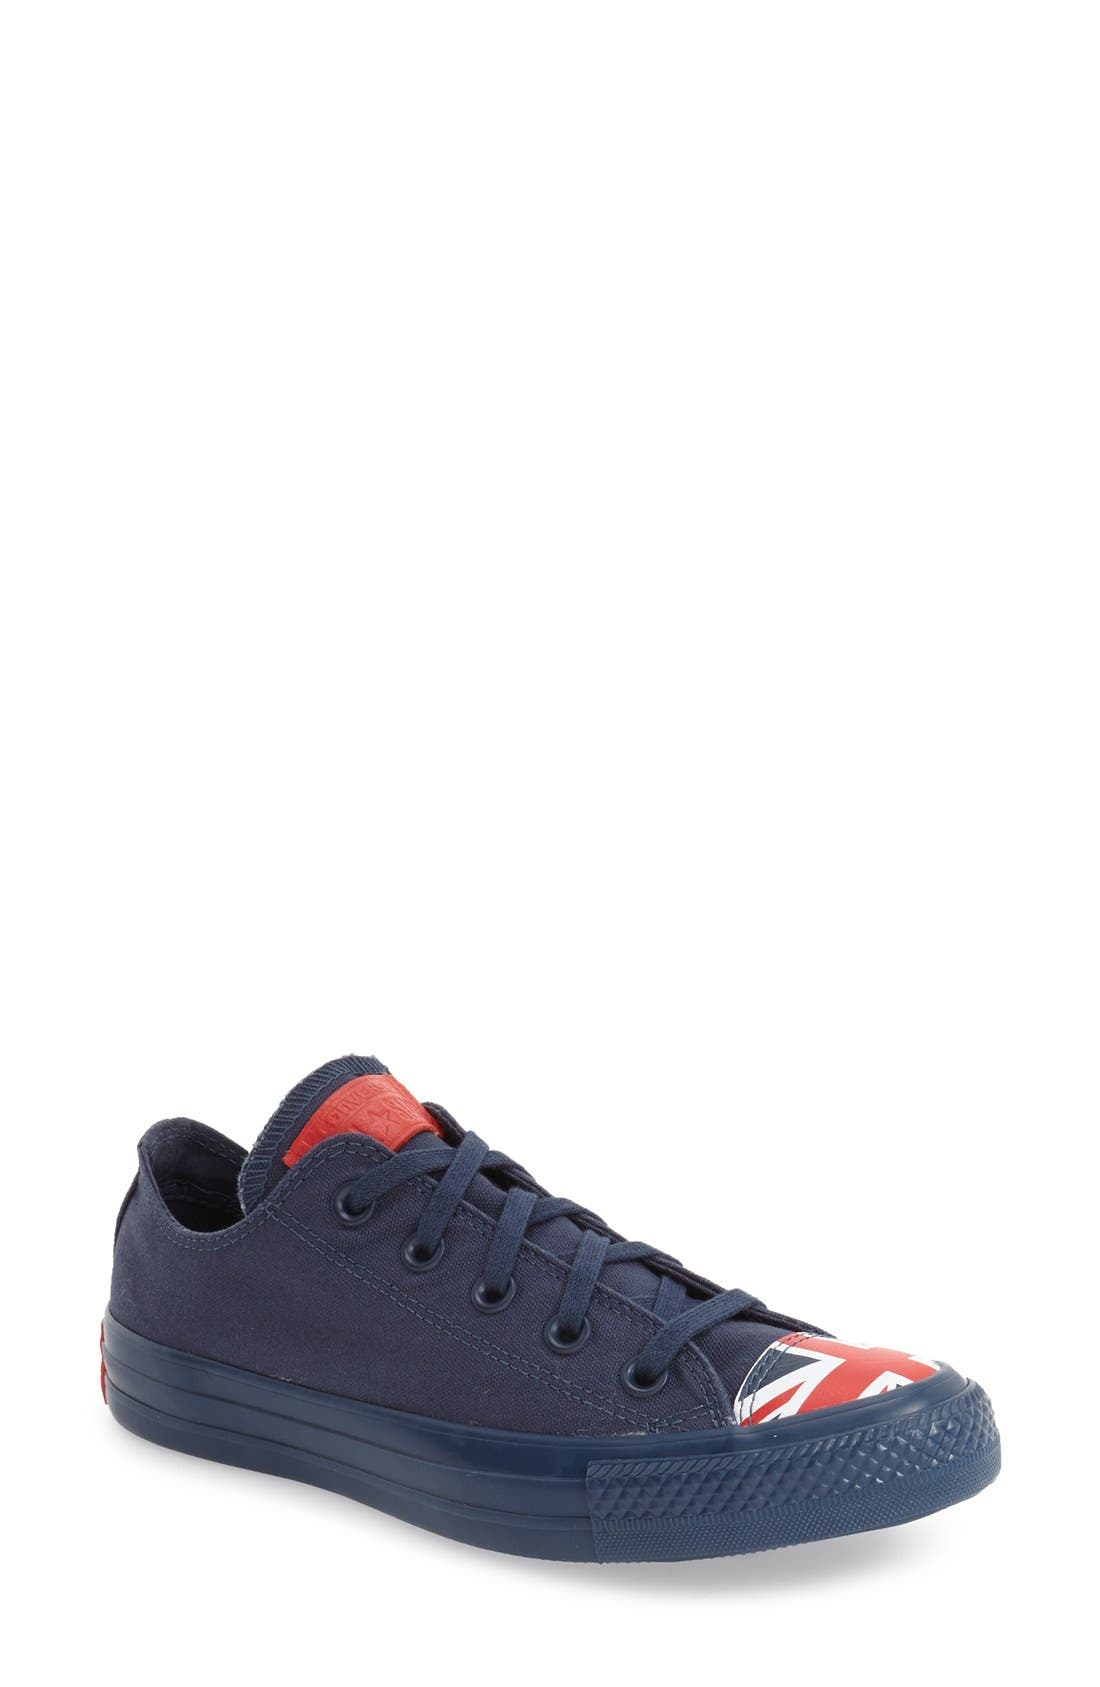 Main Image - Converse Chuck Taylor® All Star® 'Ox - Flag Toe' Low Top Sneaker (Women)